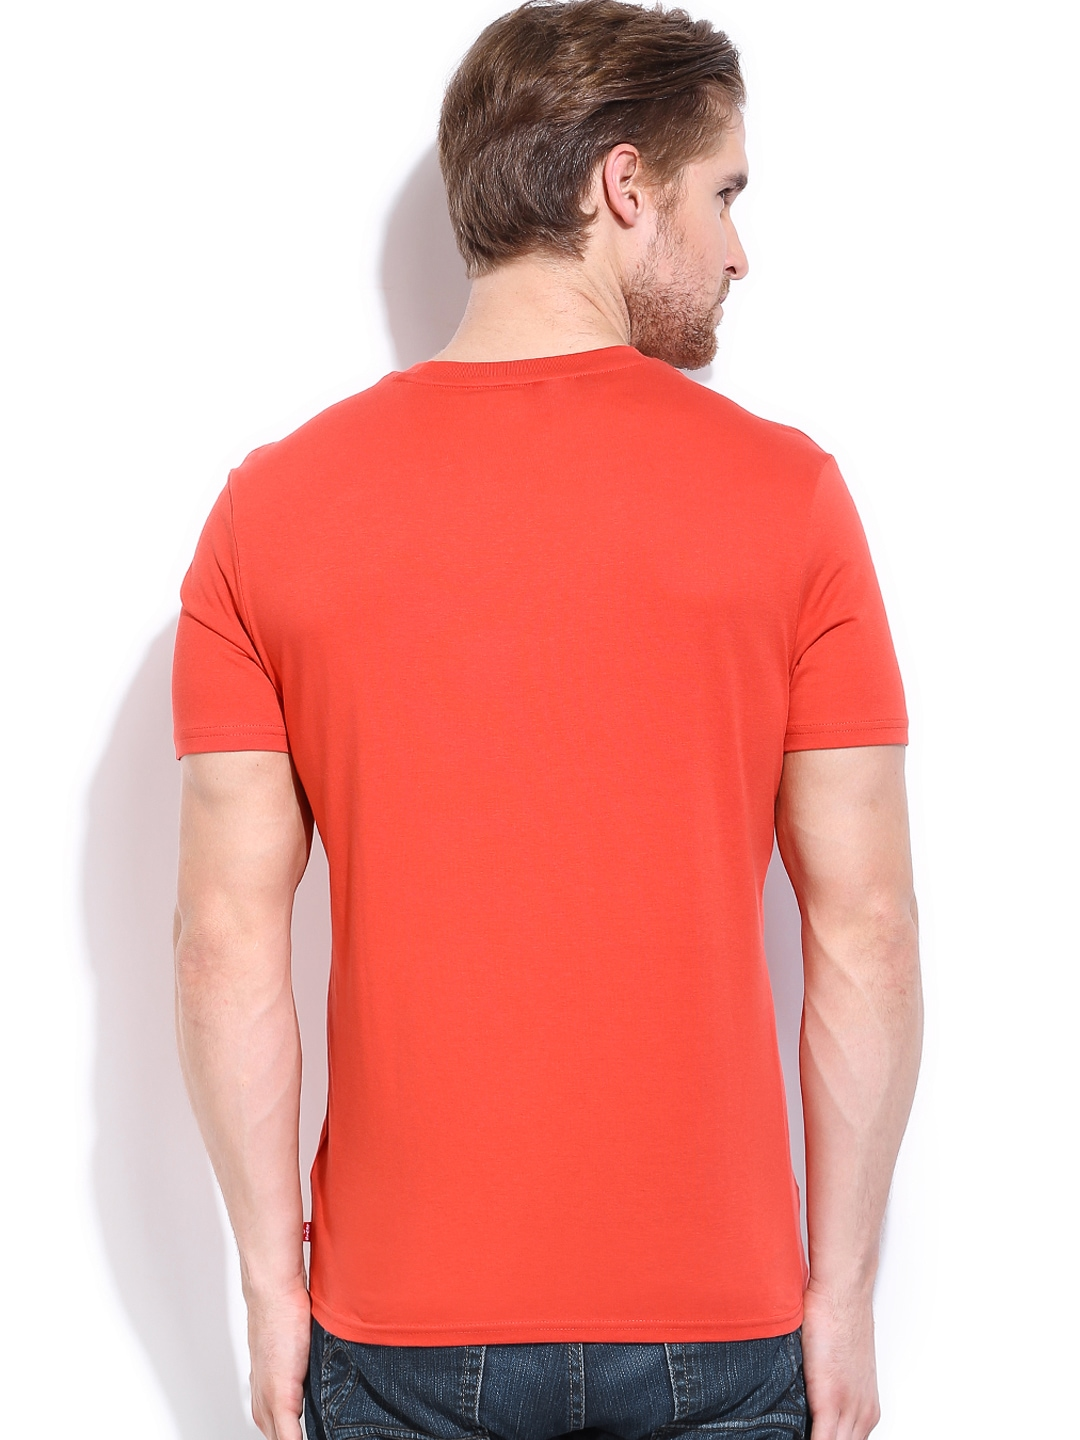 Myntra Levis Men Coral Red Printed T Shirt 745739 Buy